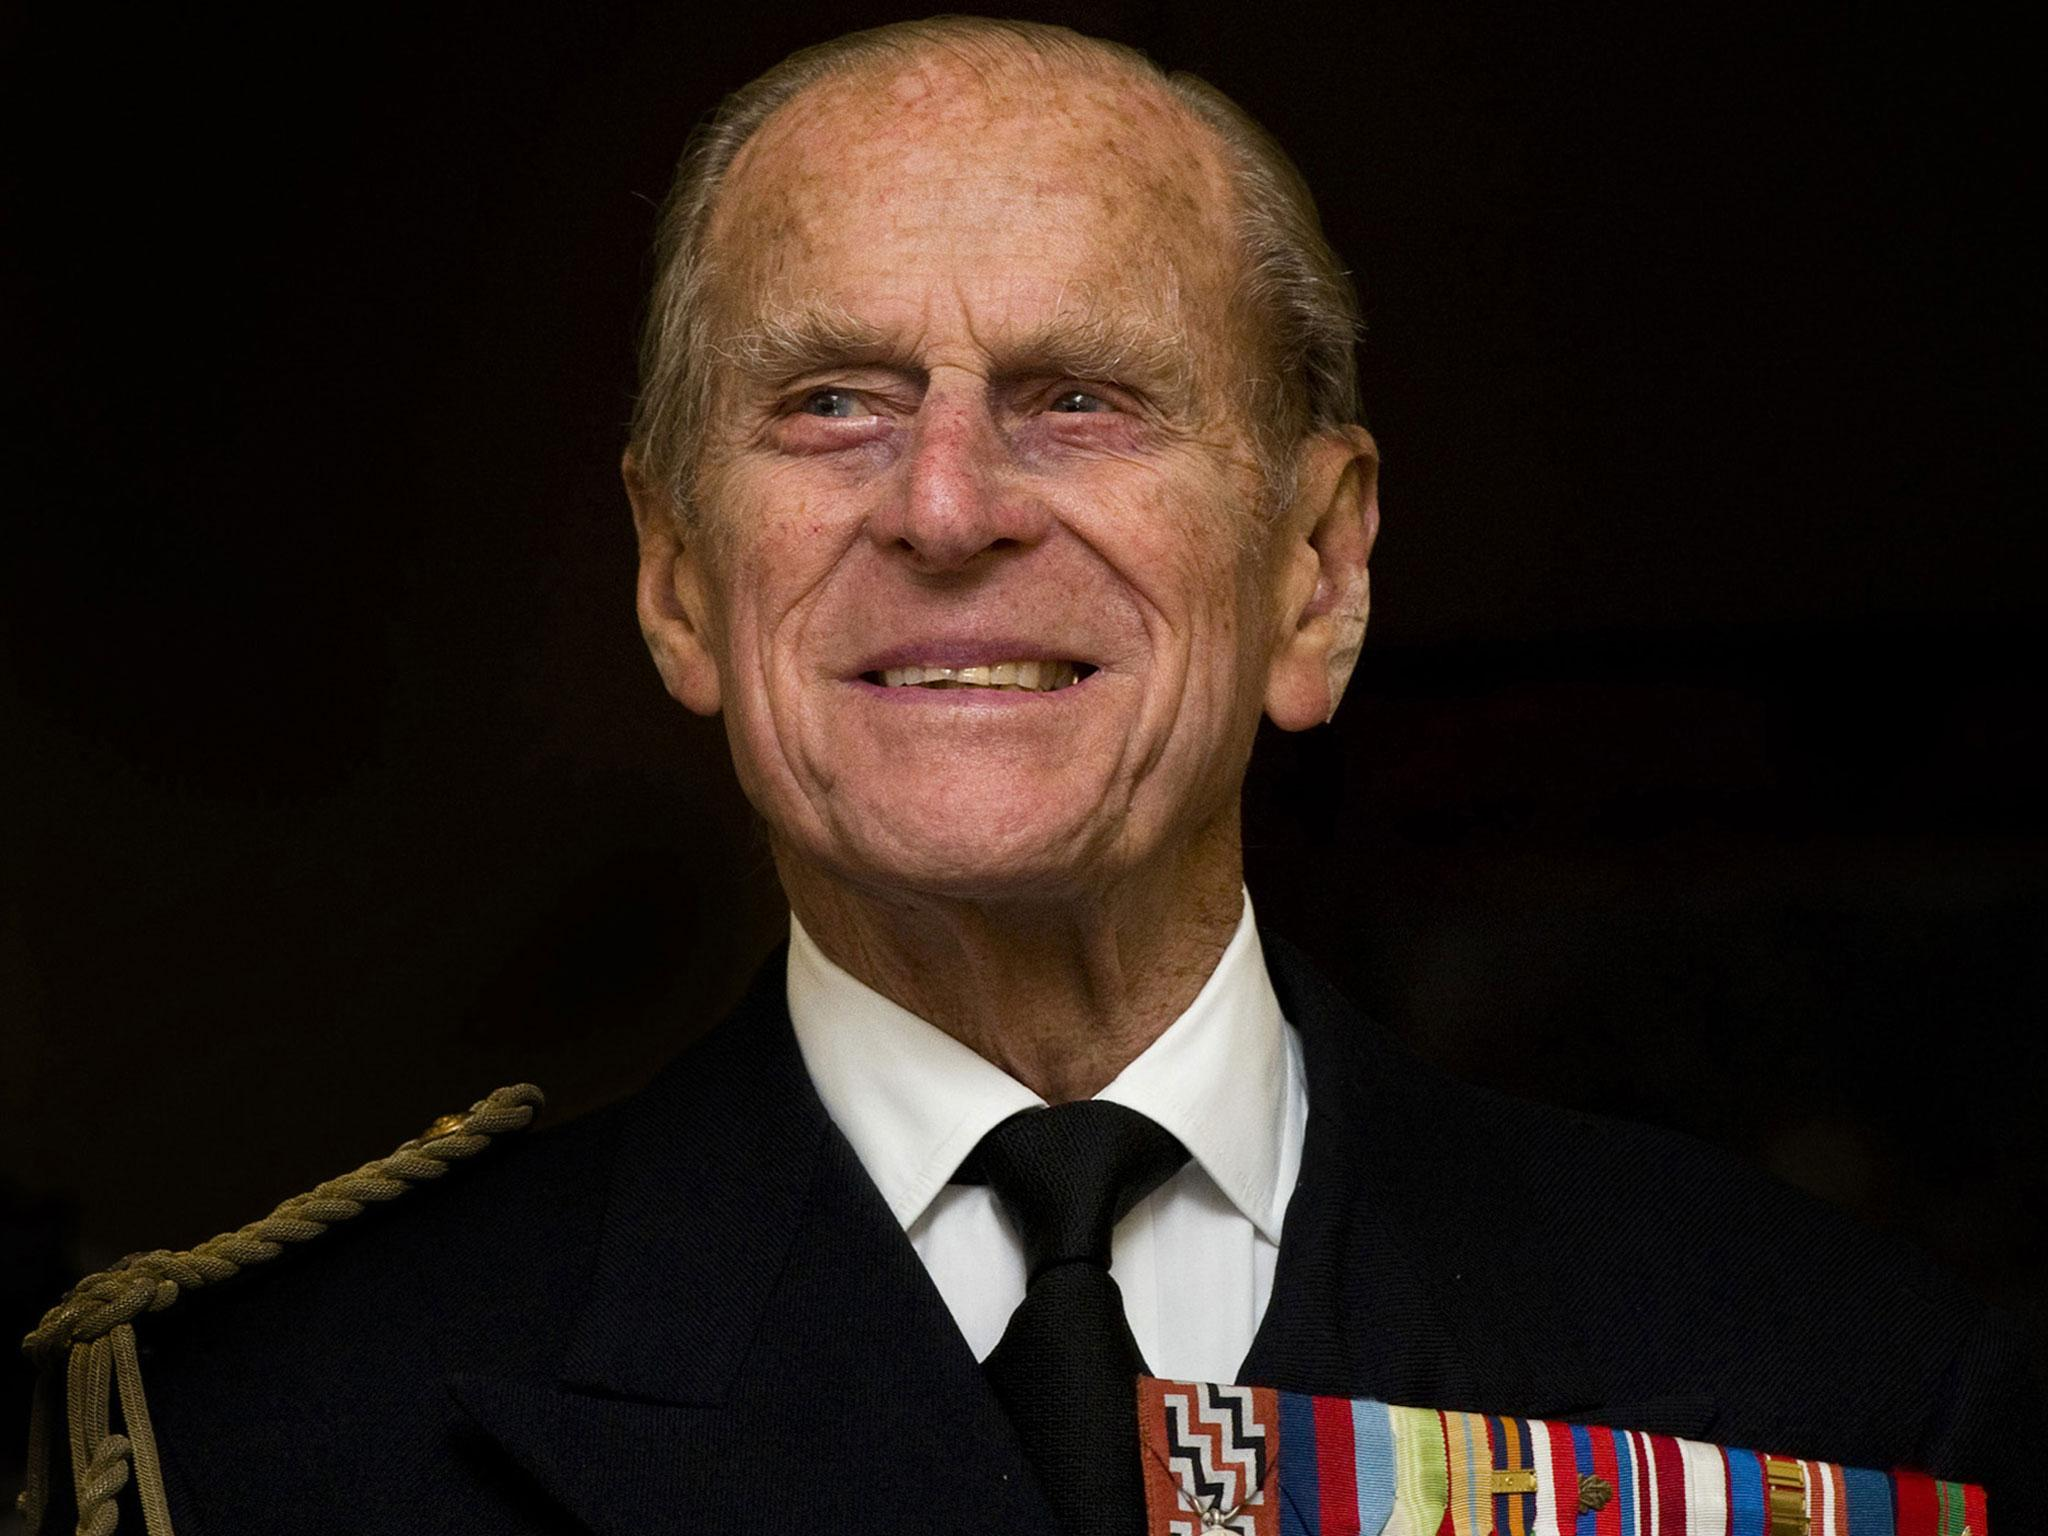 Prince Philip -98 Today!